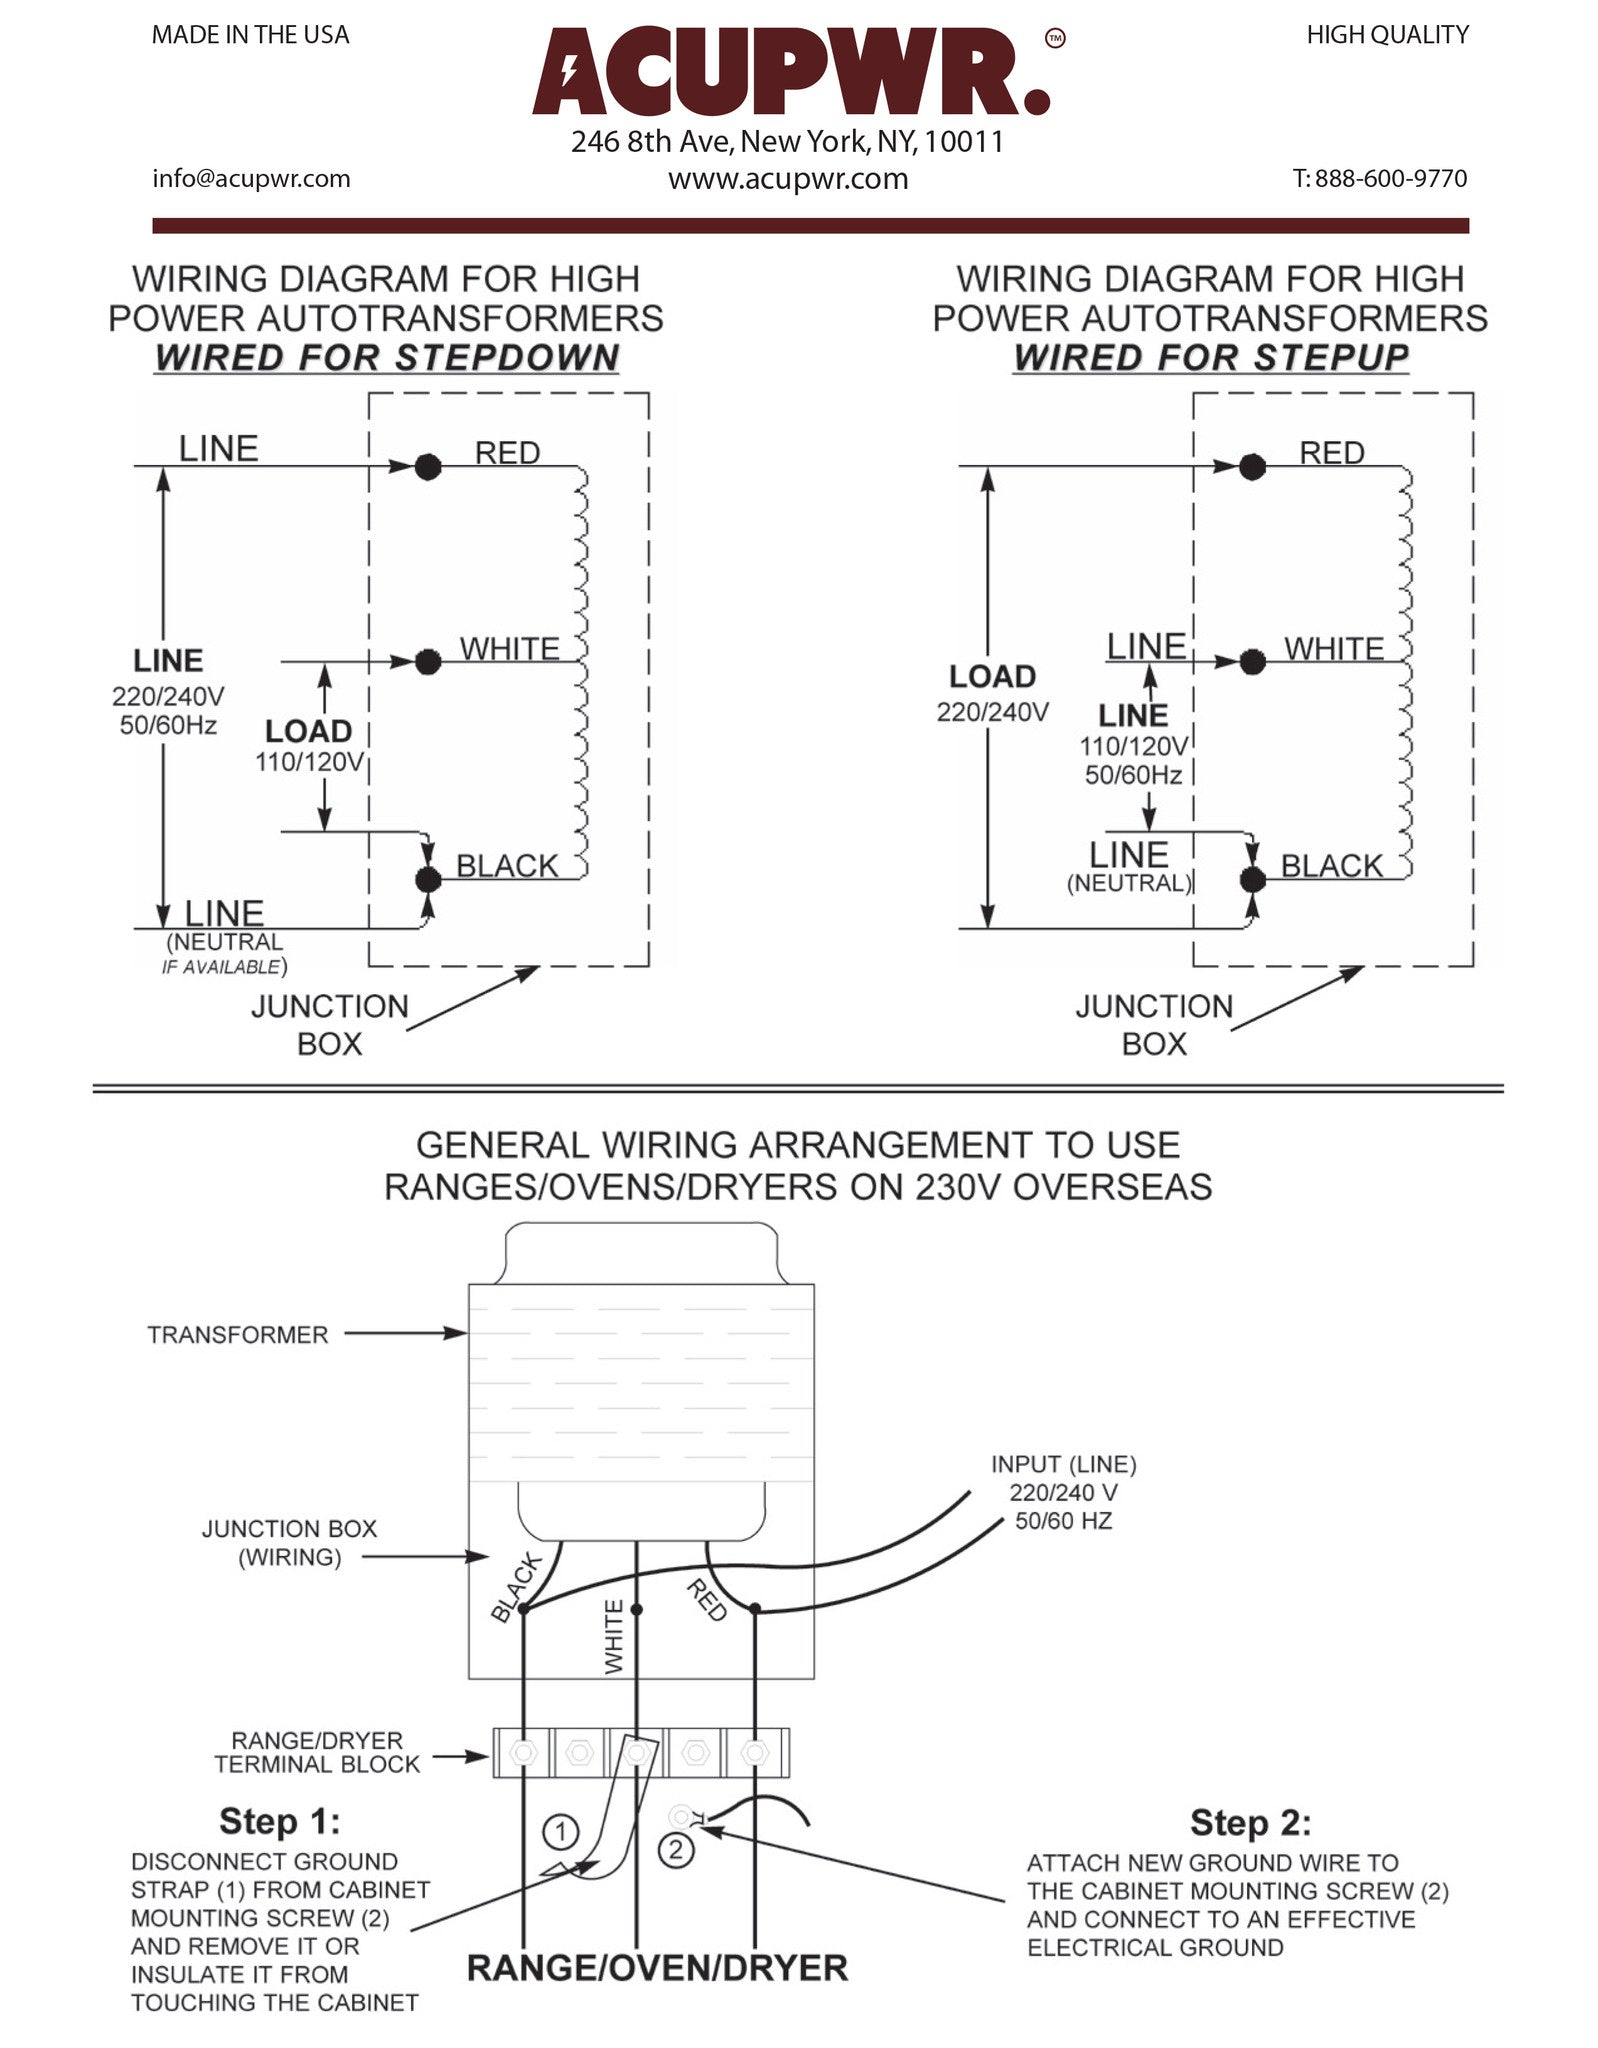 Aduh_Diagram_38ee0227 0107 4a34 96d3 1a7cb27ac531?v=1478031456 6000 tru watts™ step up step down hard wire voltage with knock electric motor wiring diagram 220 to 110 at nearapp.co